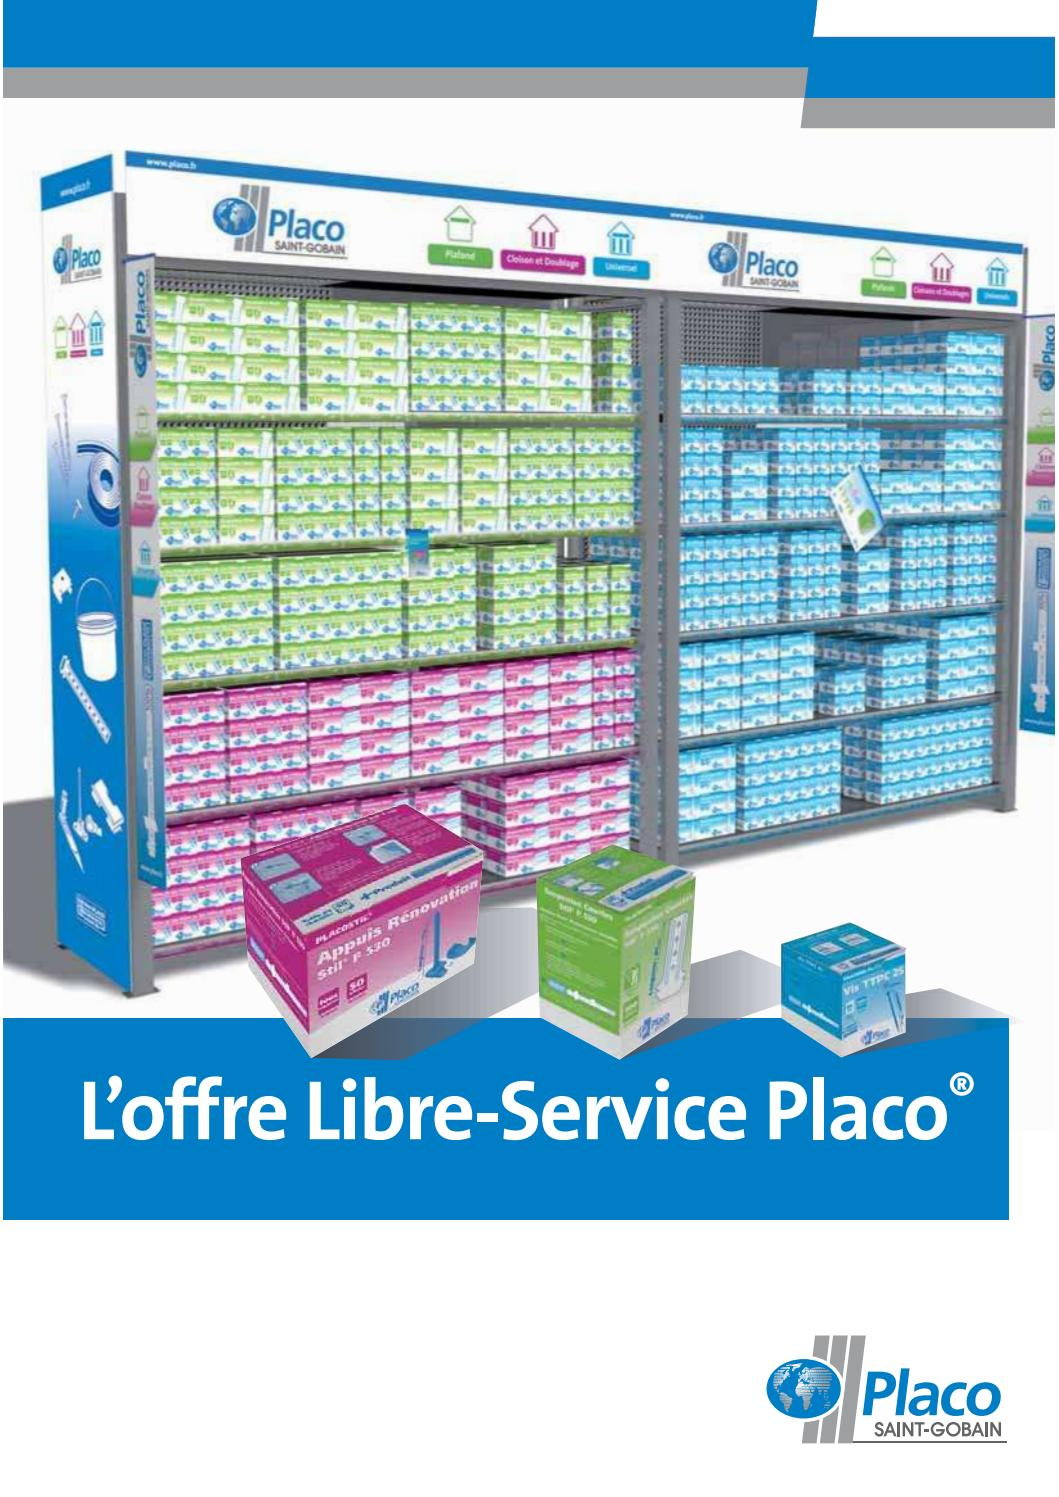 Pose Placo Plafond Sur Hourdis Polystyrene Libre Service Placo By Bigmatfrance Issuu